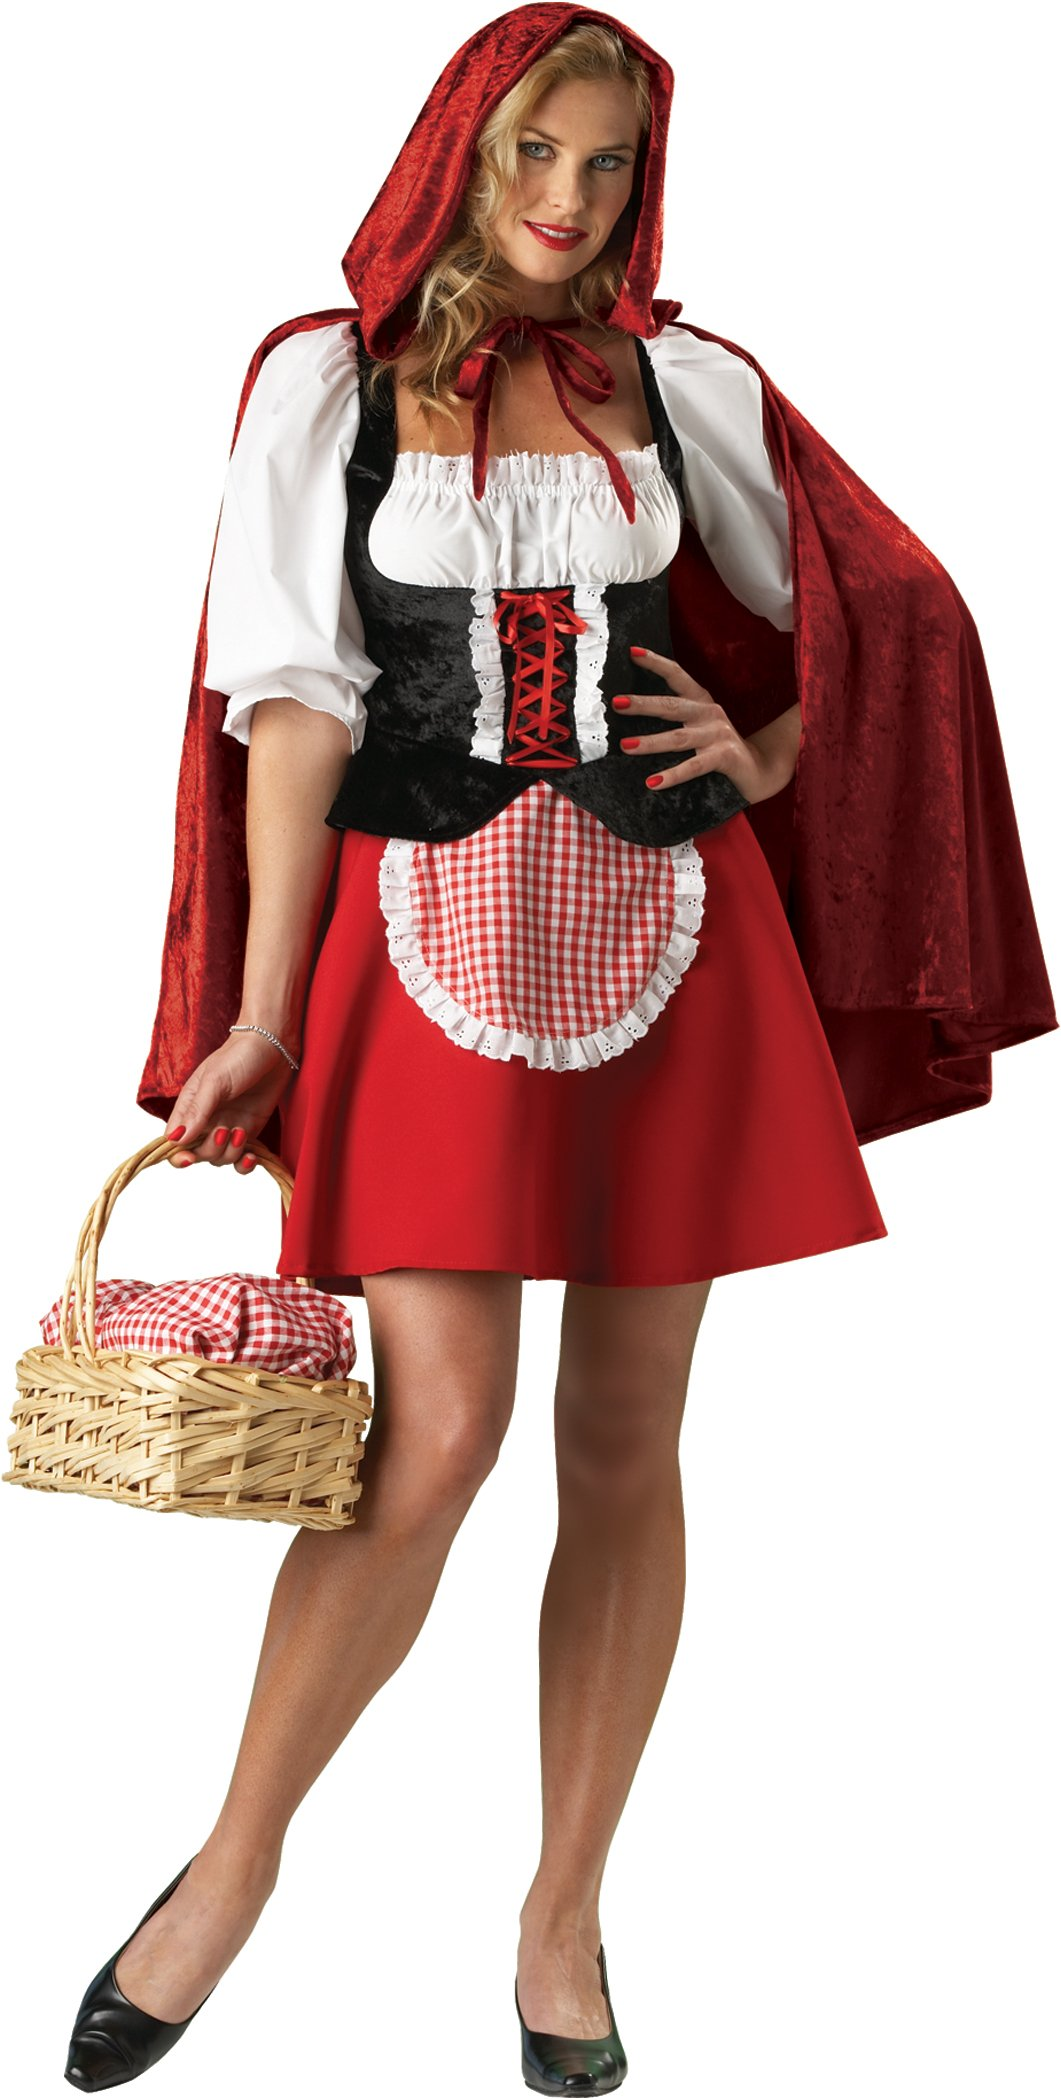 InCharacter Costumes Women's Red Riding Hood Plus Size Costume, Medium by Fun World (Image #1)